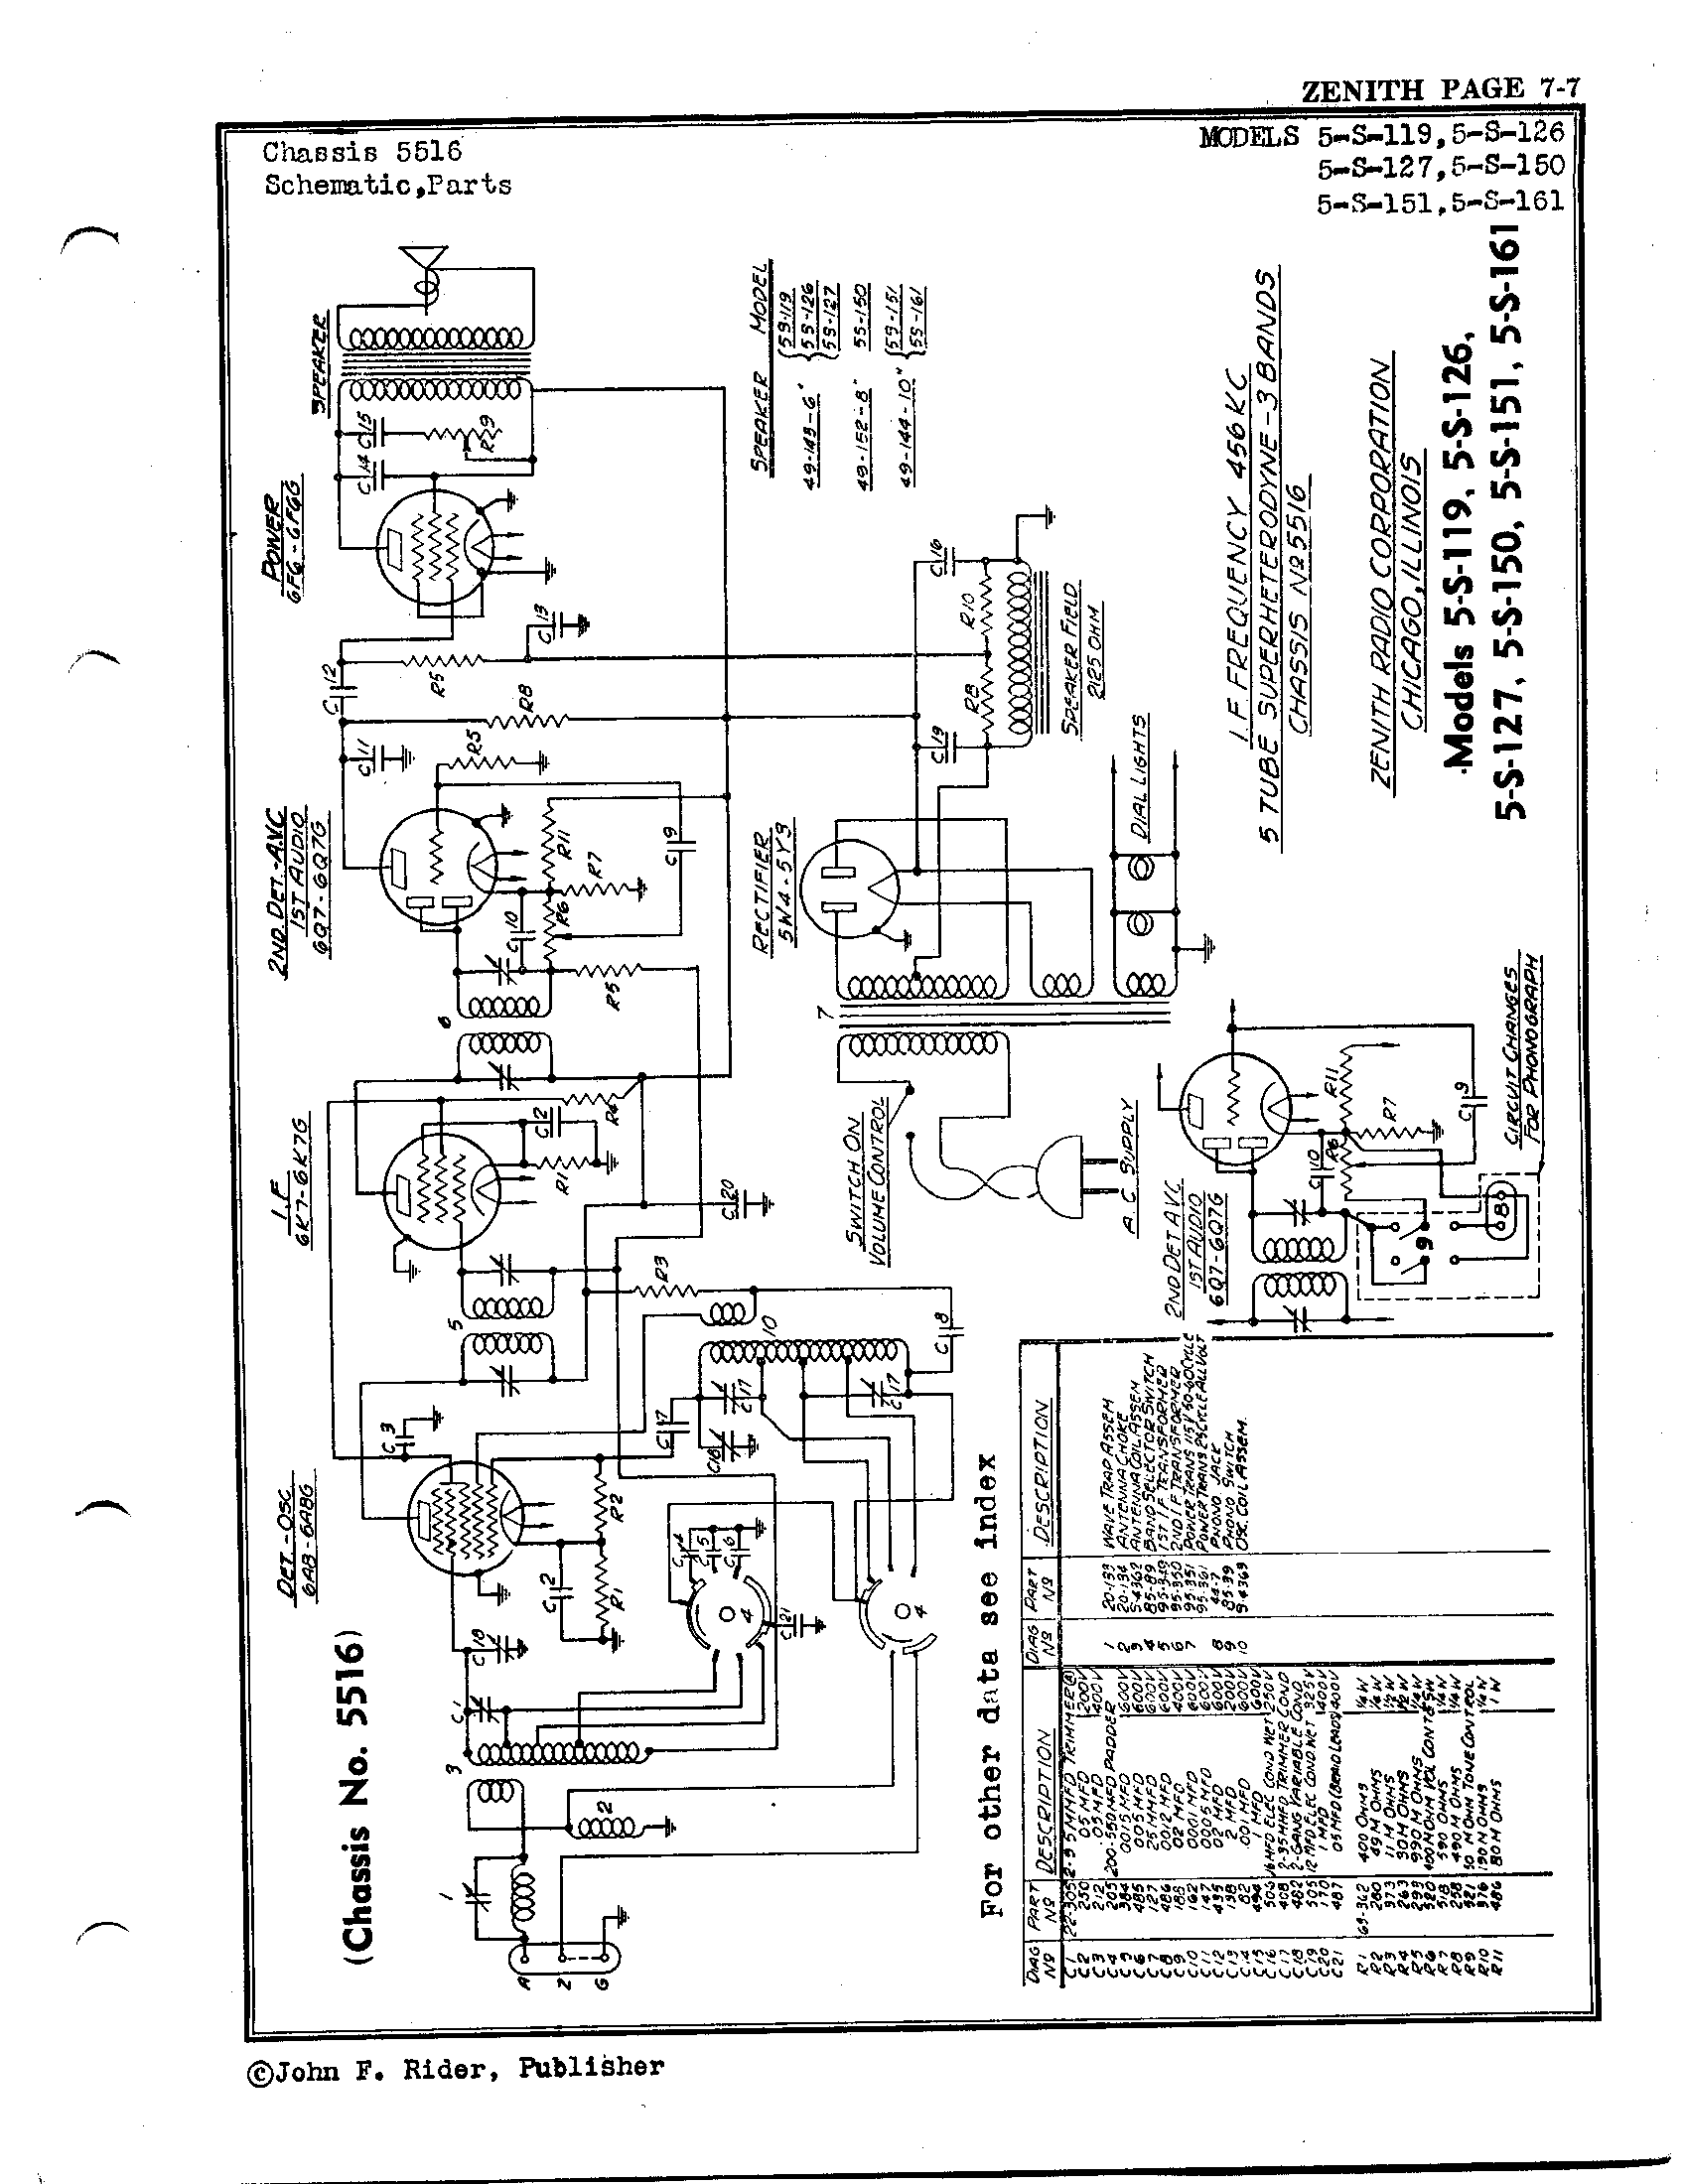 Grundig Schematic Diagram For Radio General Electric Radio